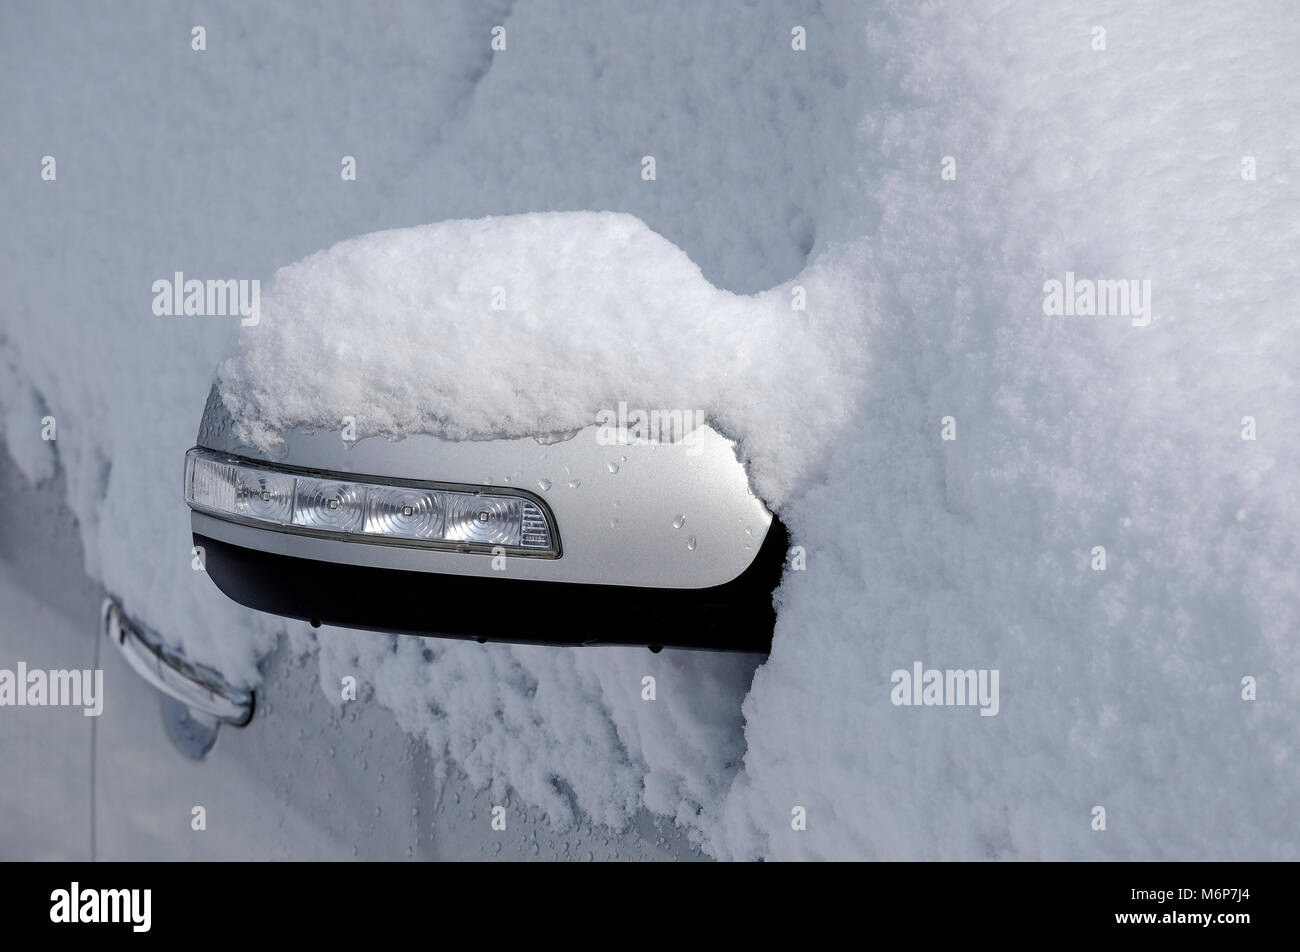 motor vehicle covered in winter snow, norfolk, england - Stock Image